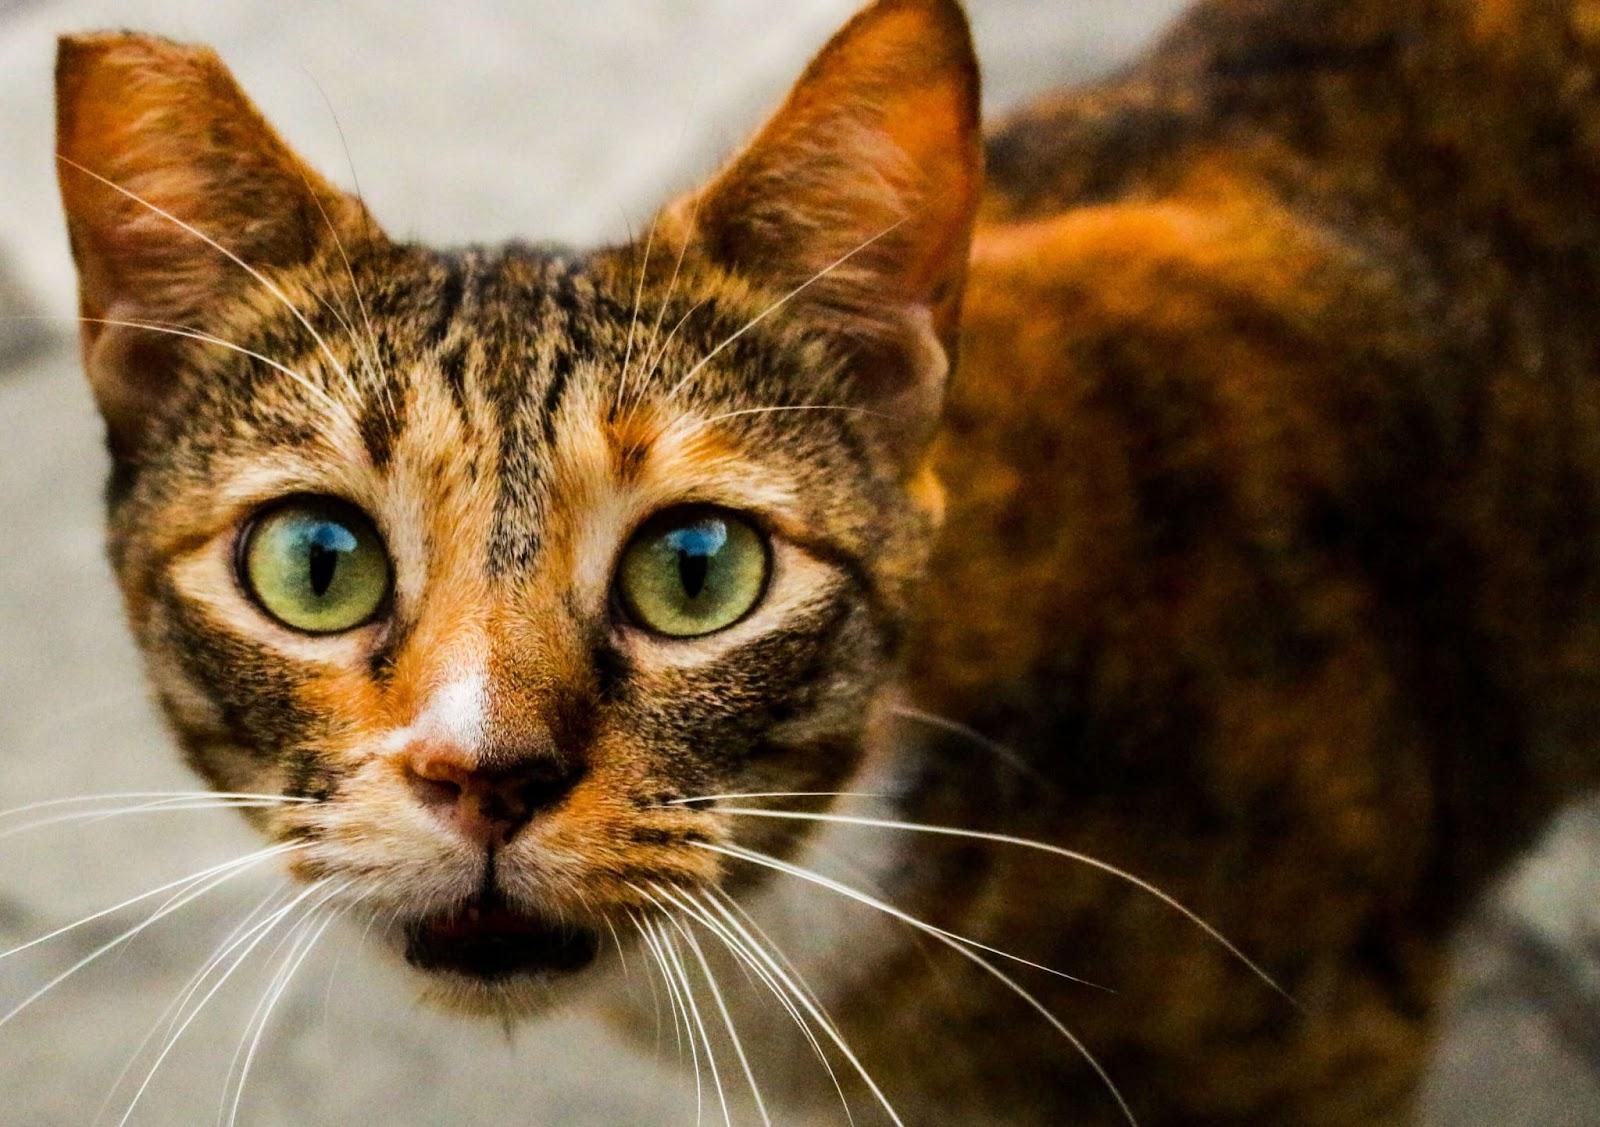 What Does It Mean When A Stray Cat Comes To Your House?